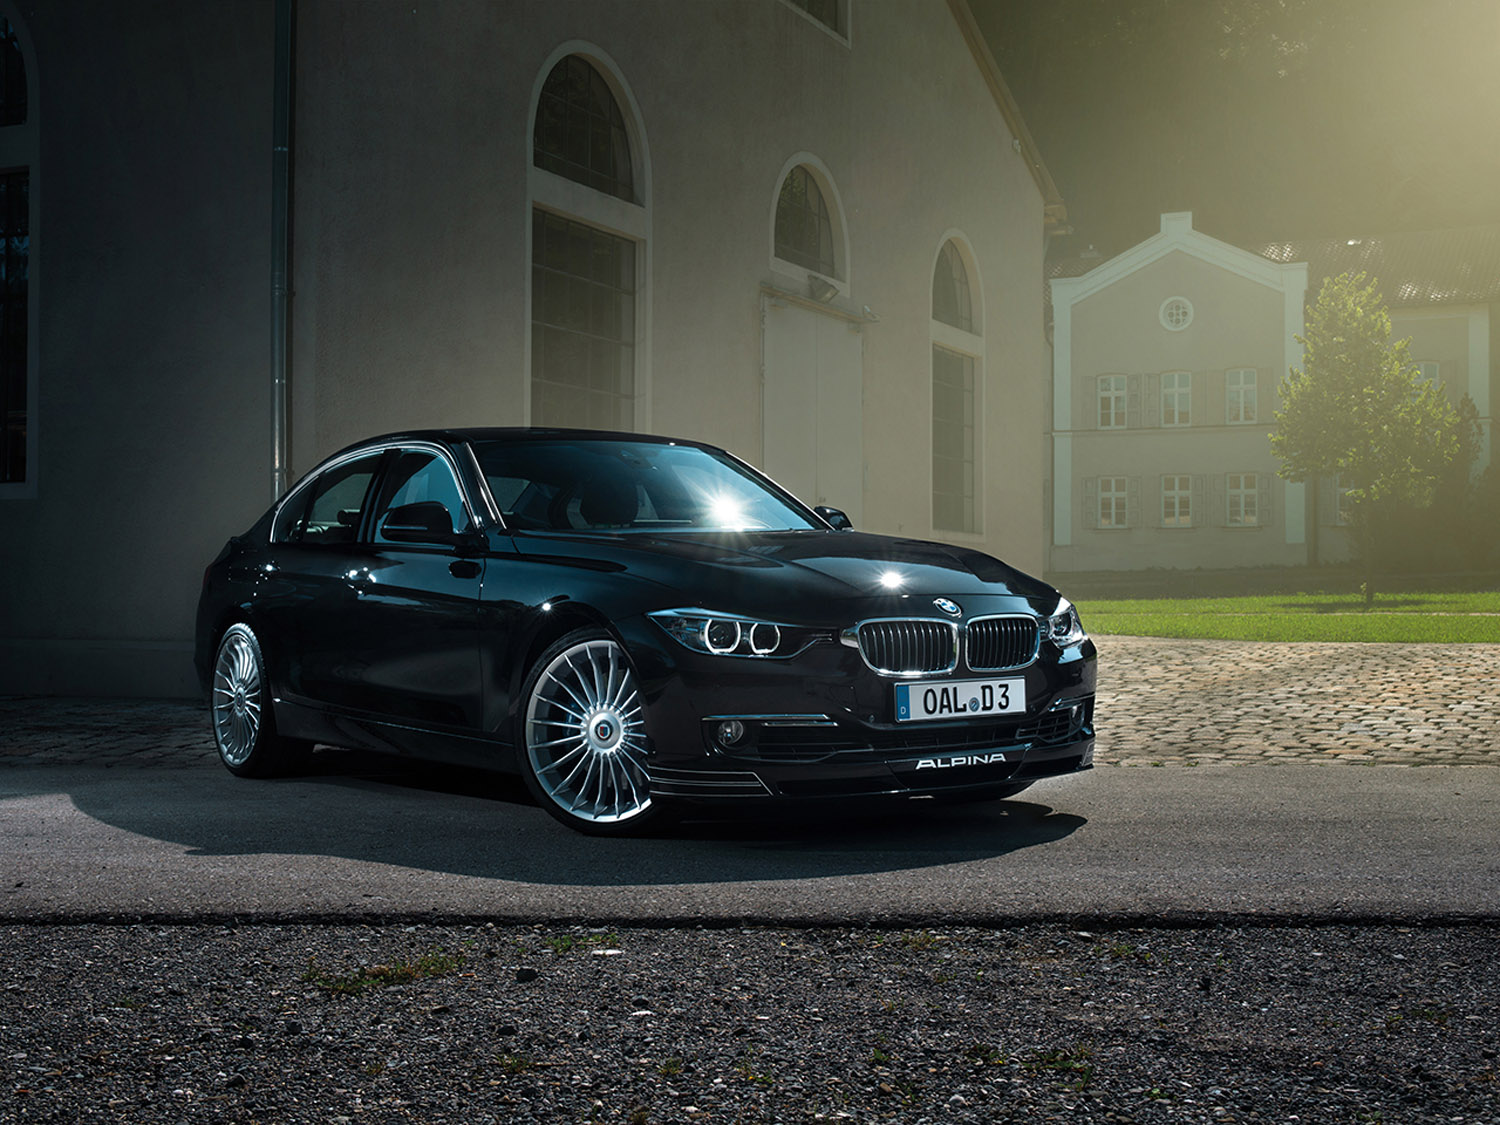 2014 bmw alpina d3 bi turbo price 49 950. Black Bedroom Furniture Sets. Home Design Ideas